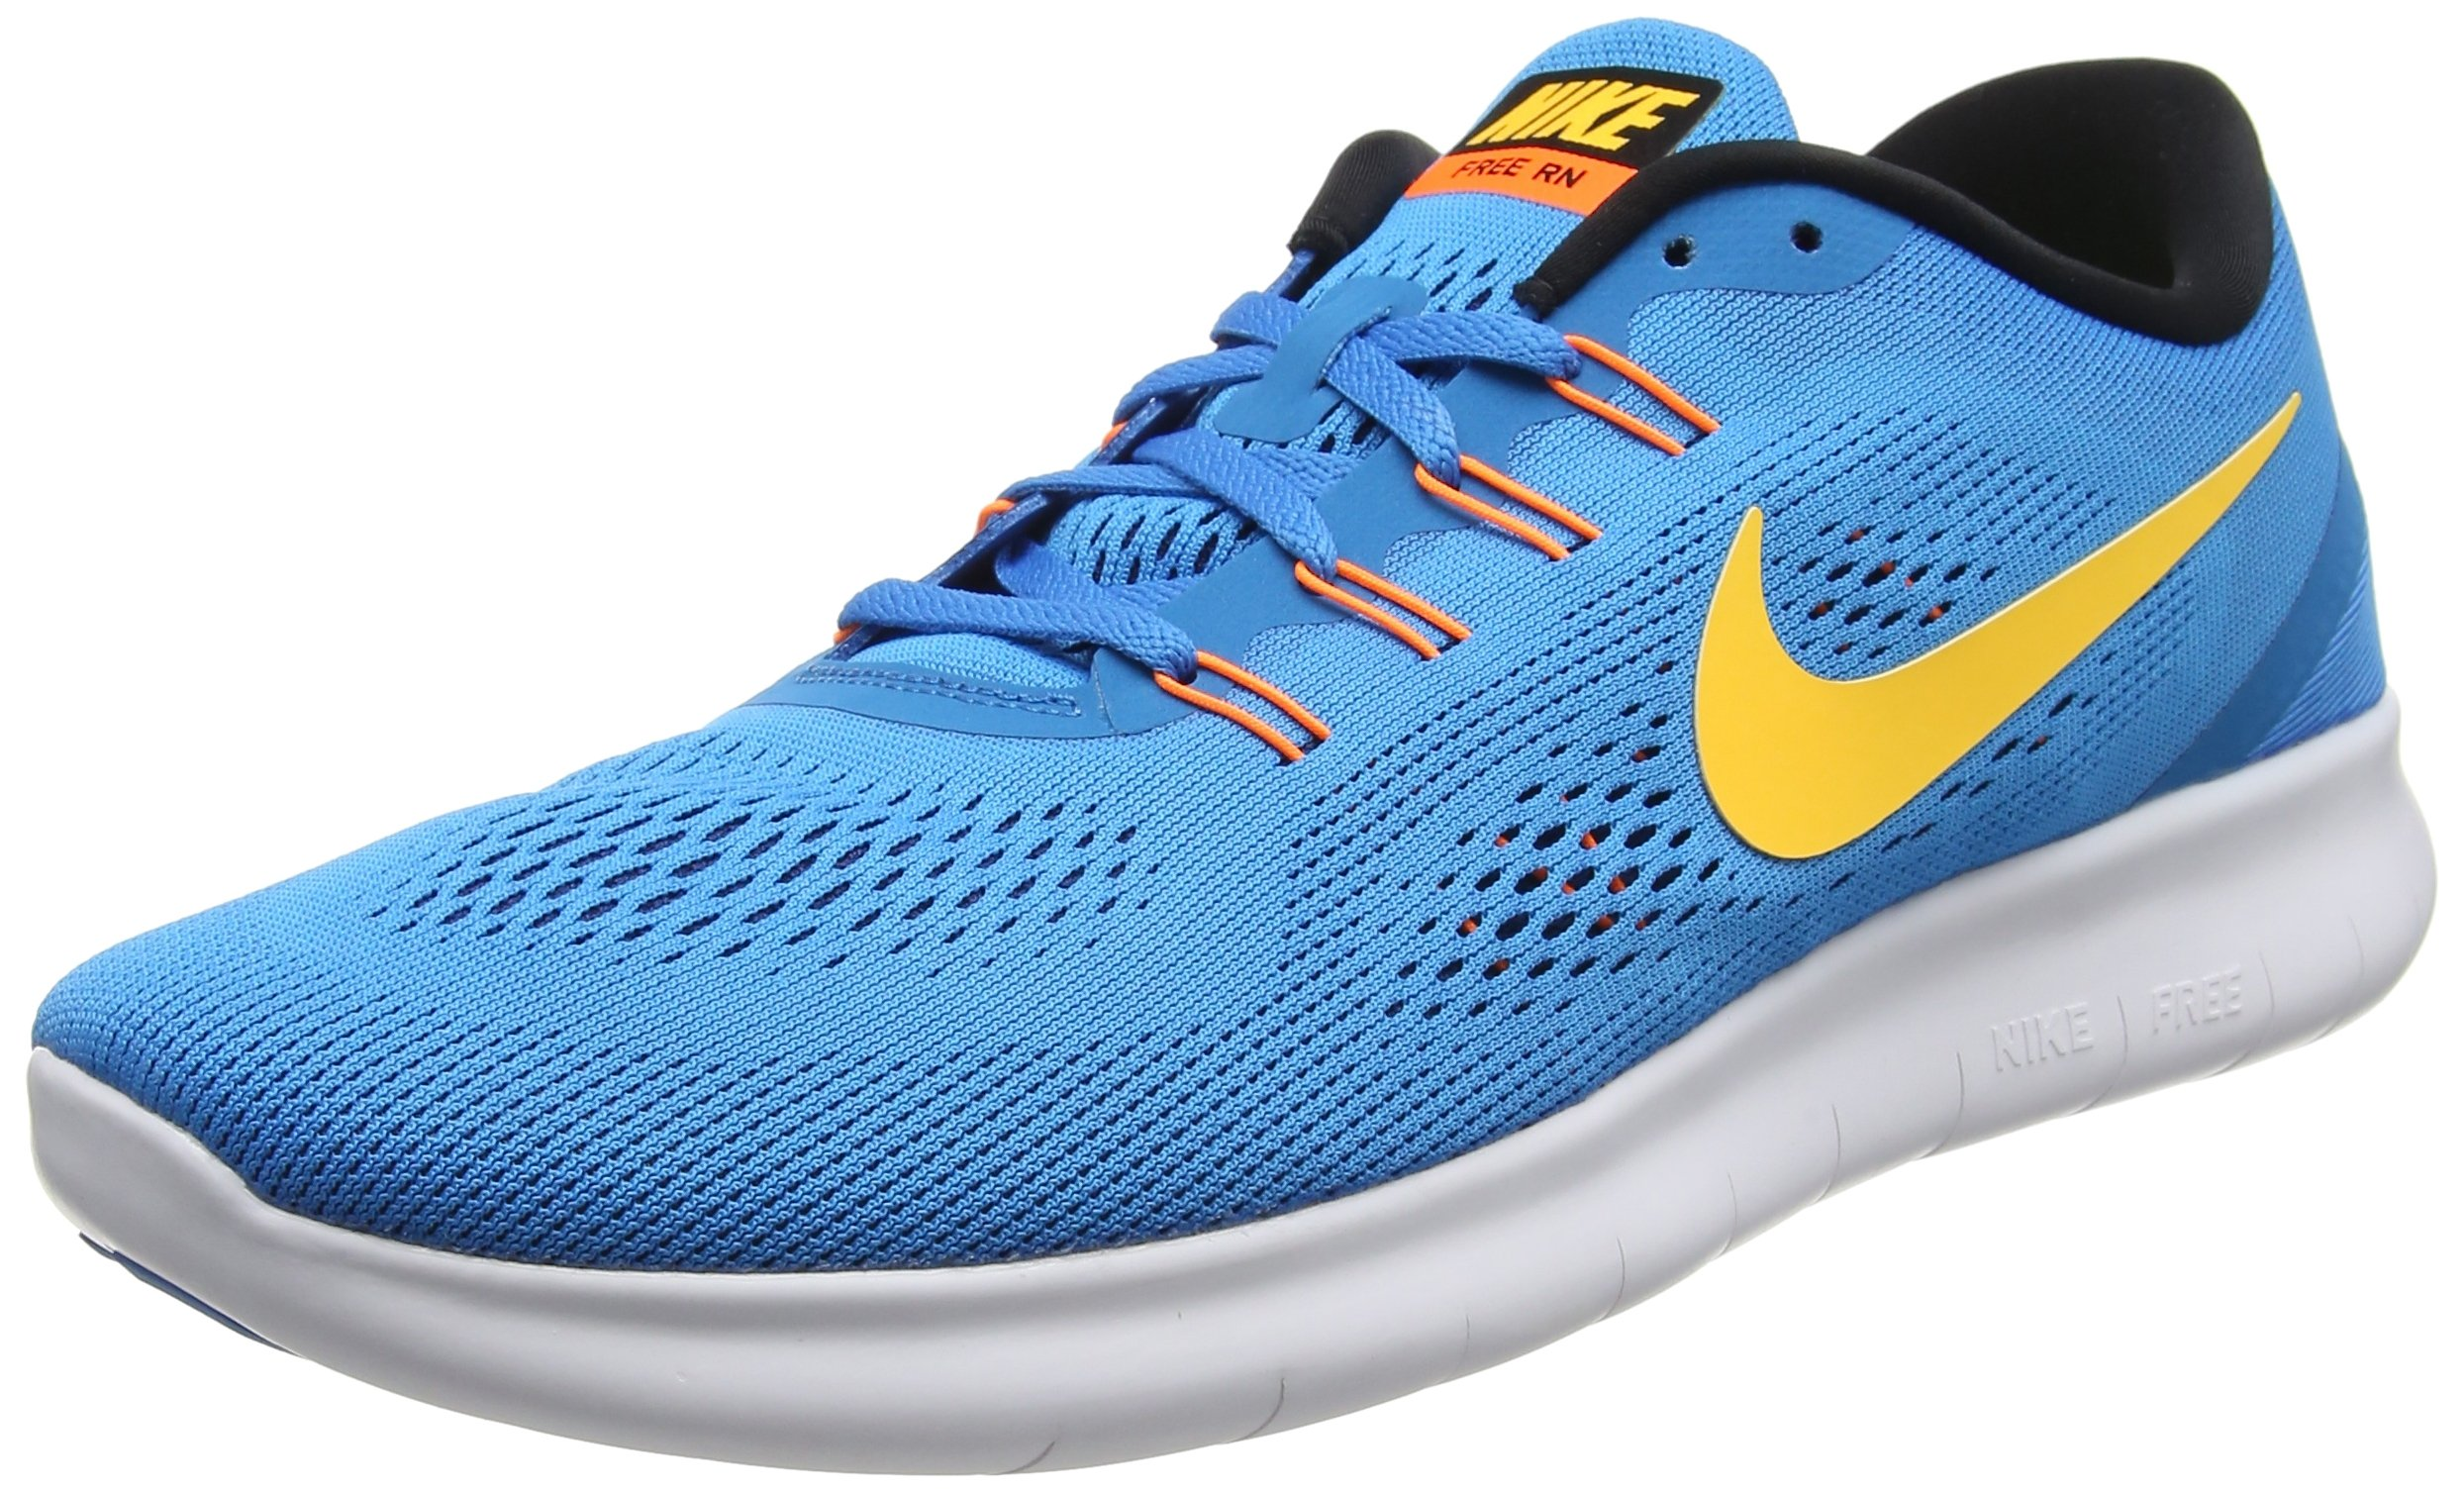 sports shoes e0828 3f07b Galleon - Nike Men s Free RN Running Shoe (12.5 D(M) US, Squadron Blue Gym  Red Blue Spark Black)